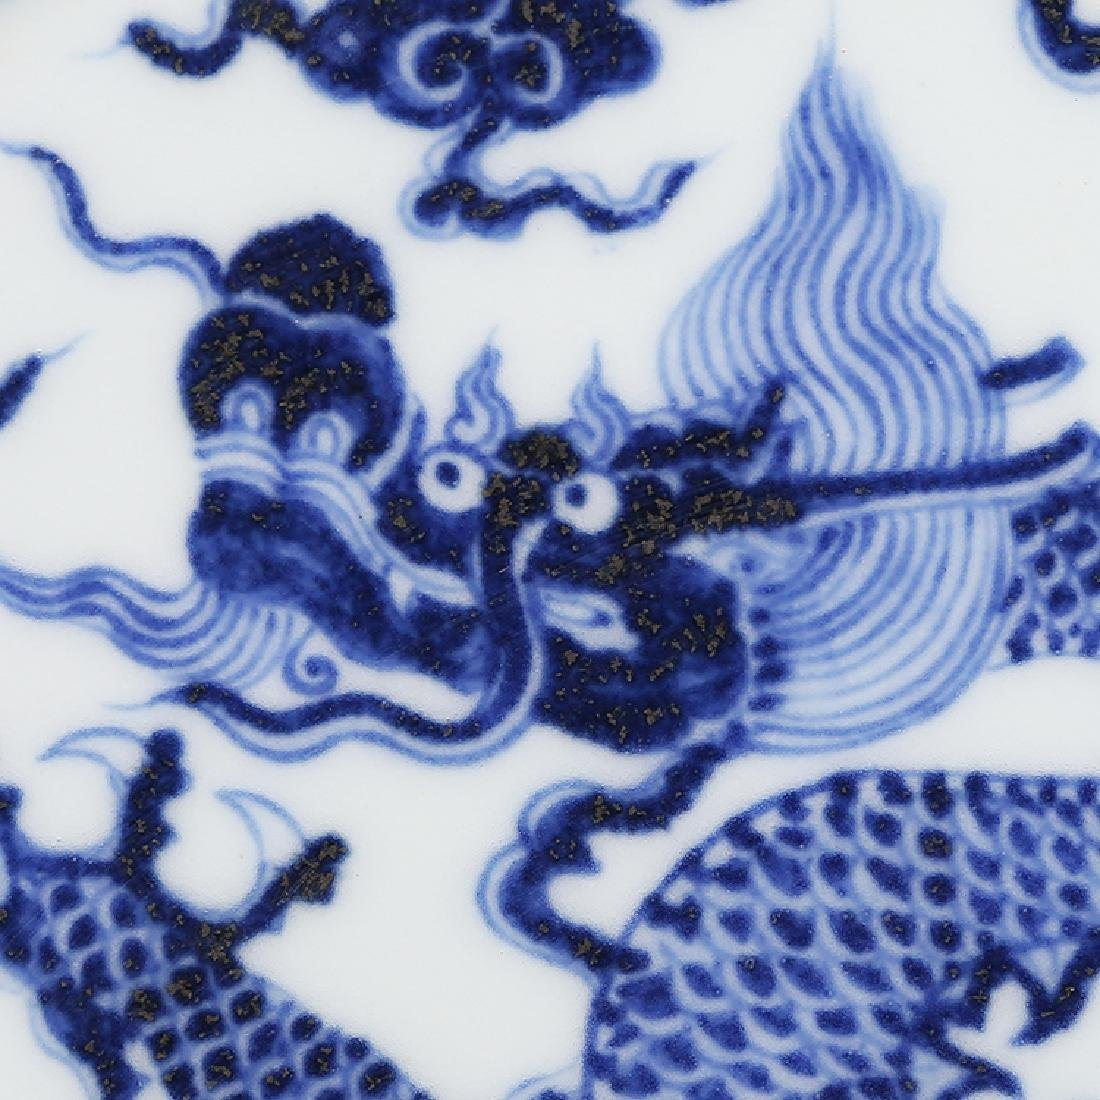 Chinese Blue And White Porcelain Plate - 9